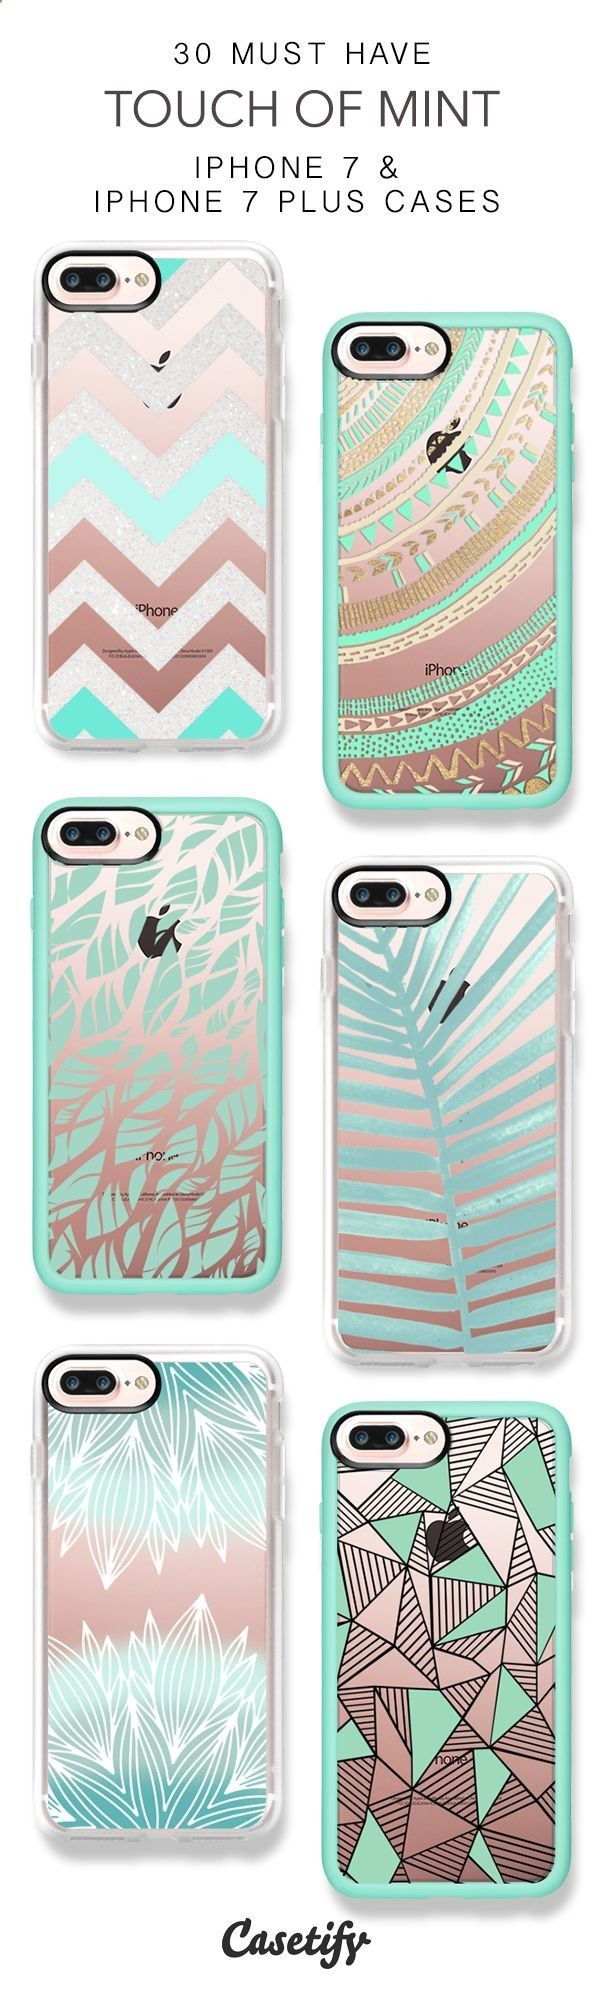 iPad Cases - 30 Must Have Touch Of Mint Protective iPhone 7 Cases and iPhone 7 Plus Cases. More Pattern iPhone case here > www.casetify.com/... Apple launched a case to protect the new 10.5-inch iPad, and there is also a new full wireless keyboard with number keys.